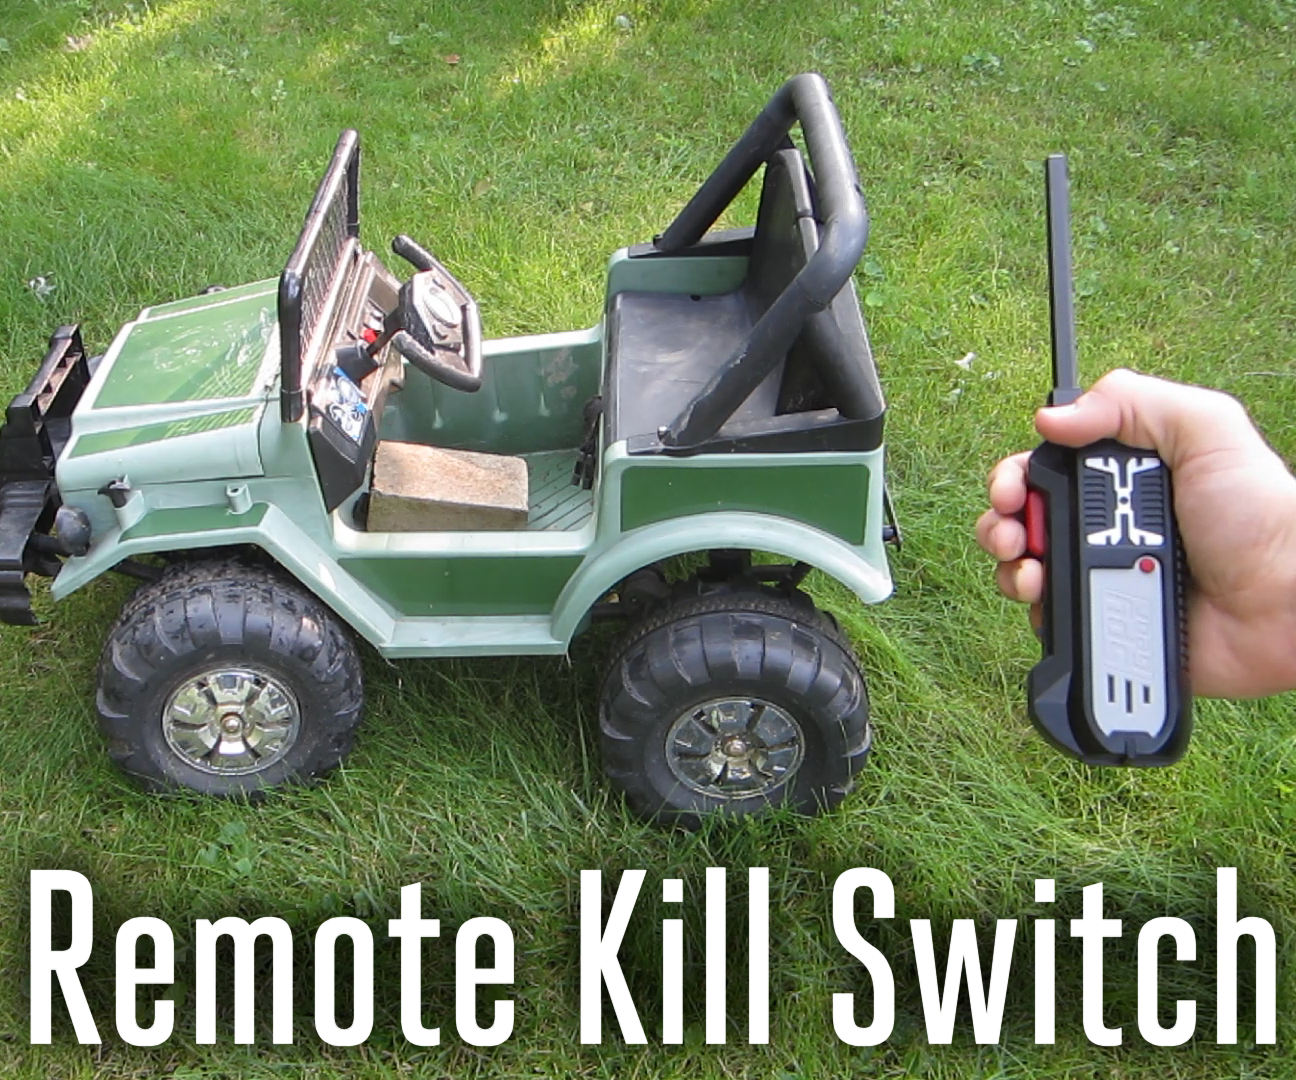 Remote Kill Switch